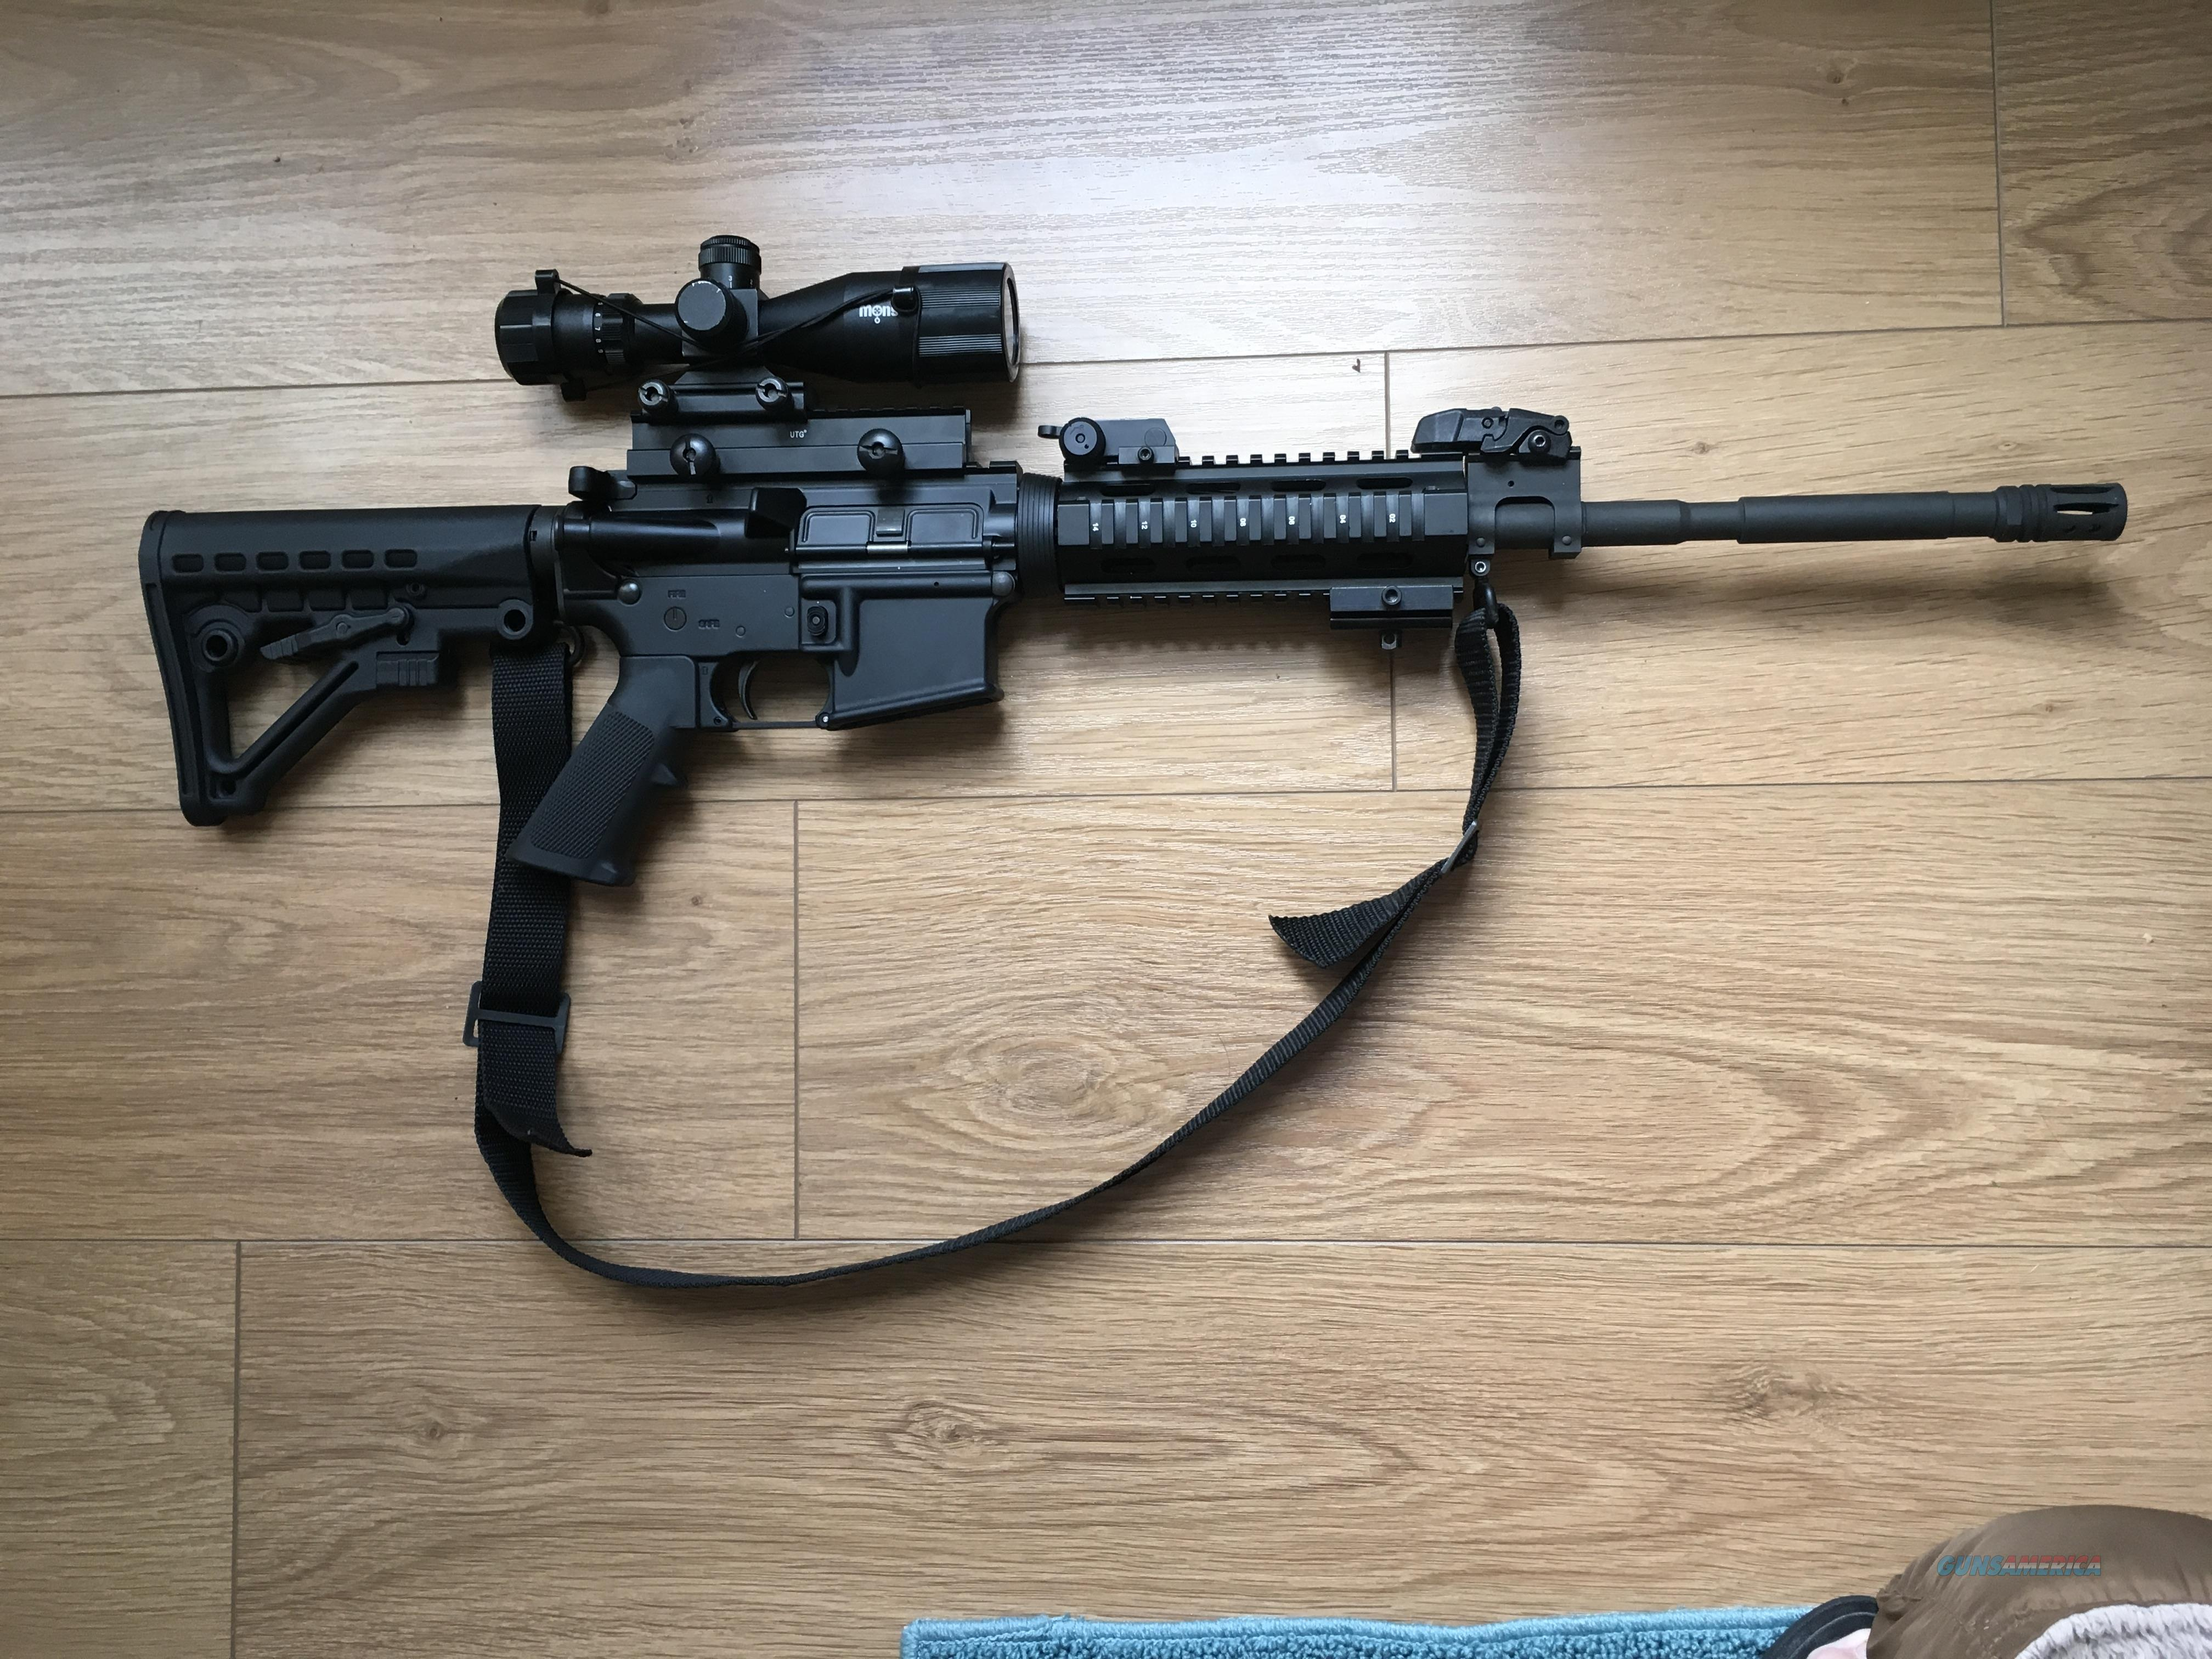 windham weaponry ar 15 model ww-15 .223-5.56mm  Guns > Rifles > Windham Weaponry Rifles